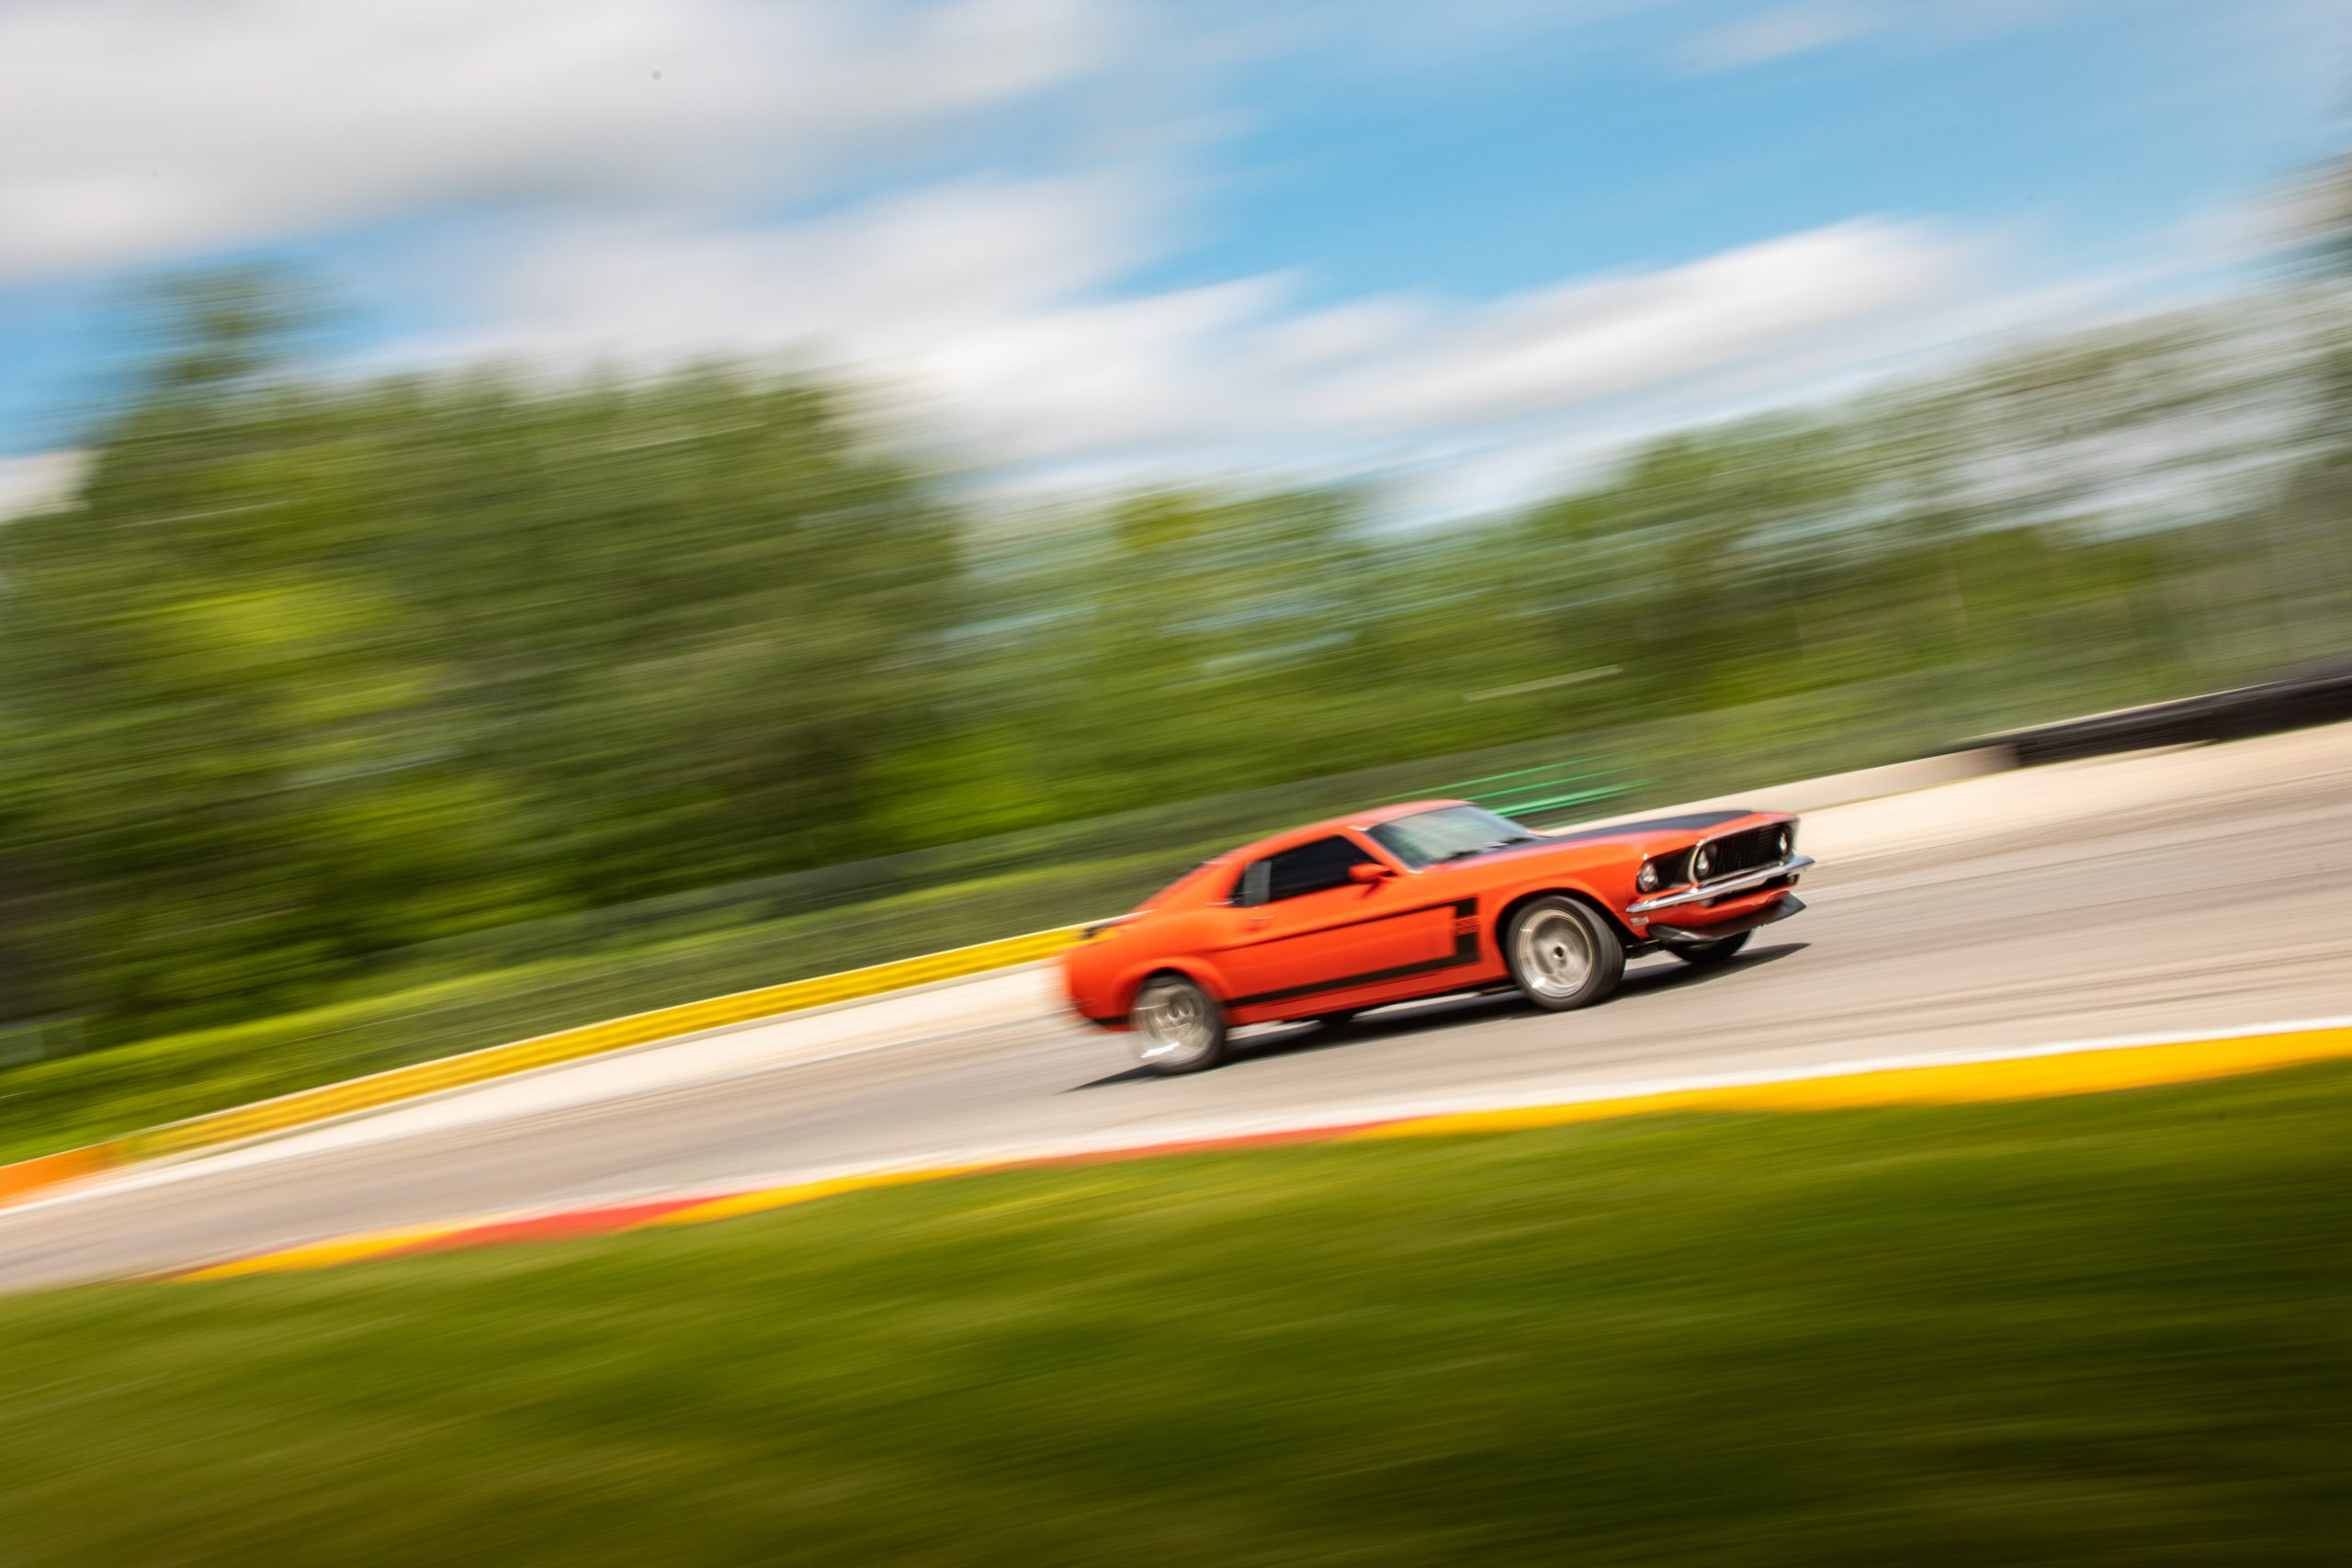 ford mustang boss 302 vintage car track action